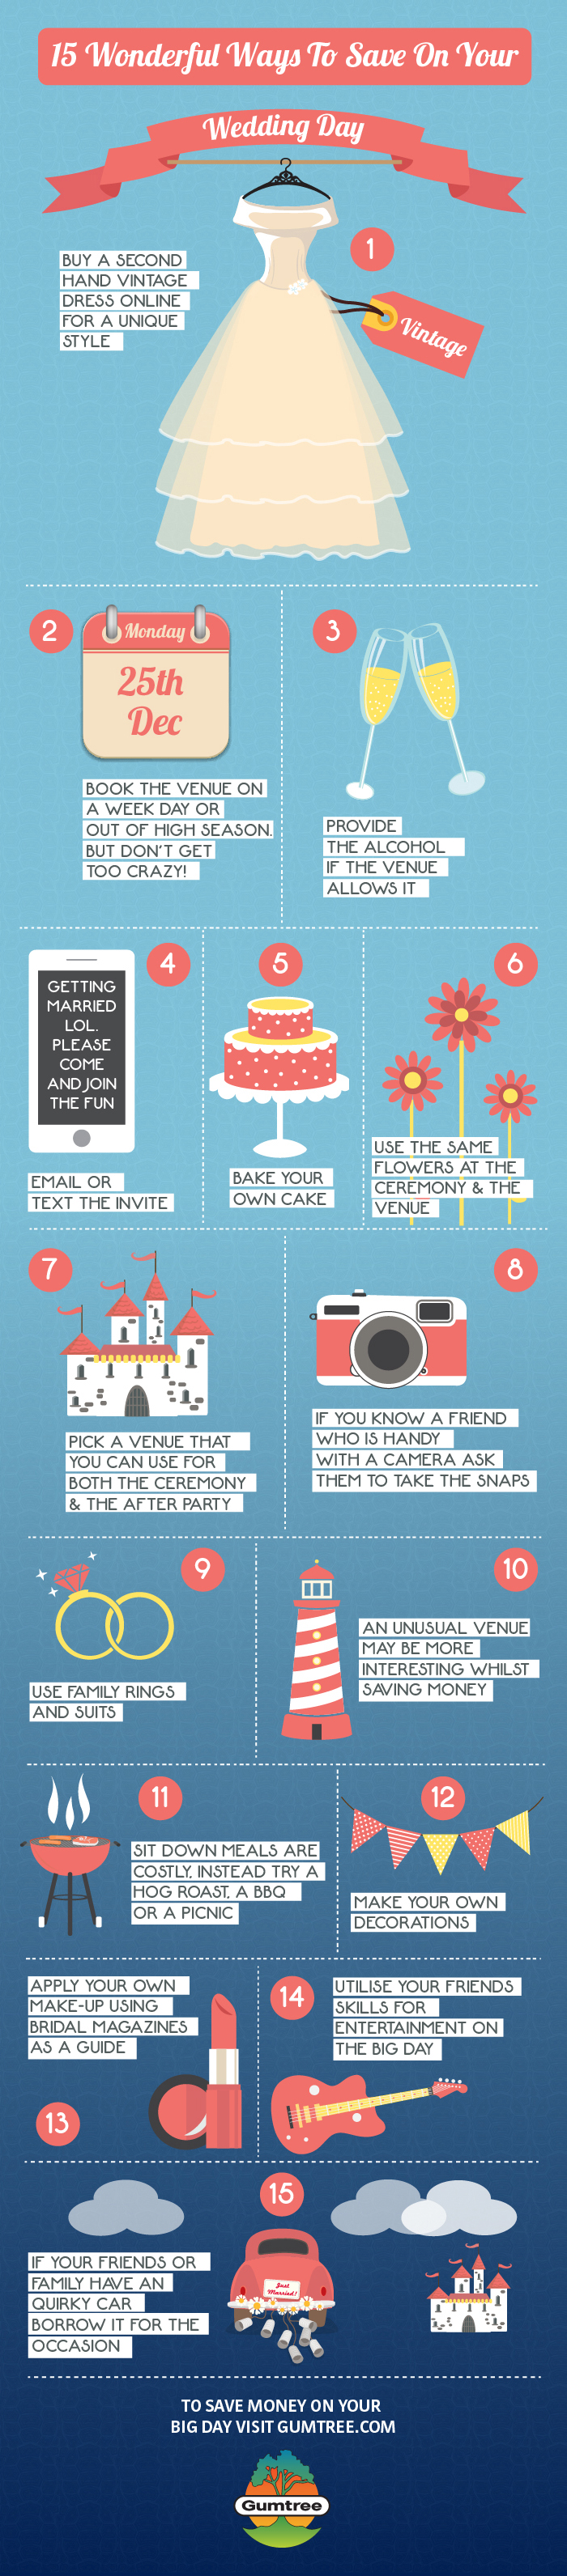 A Gumtree graphic - 15 Money Saving Tips For Your Wedding Day